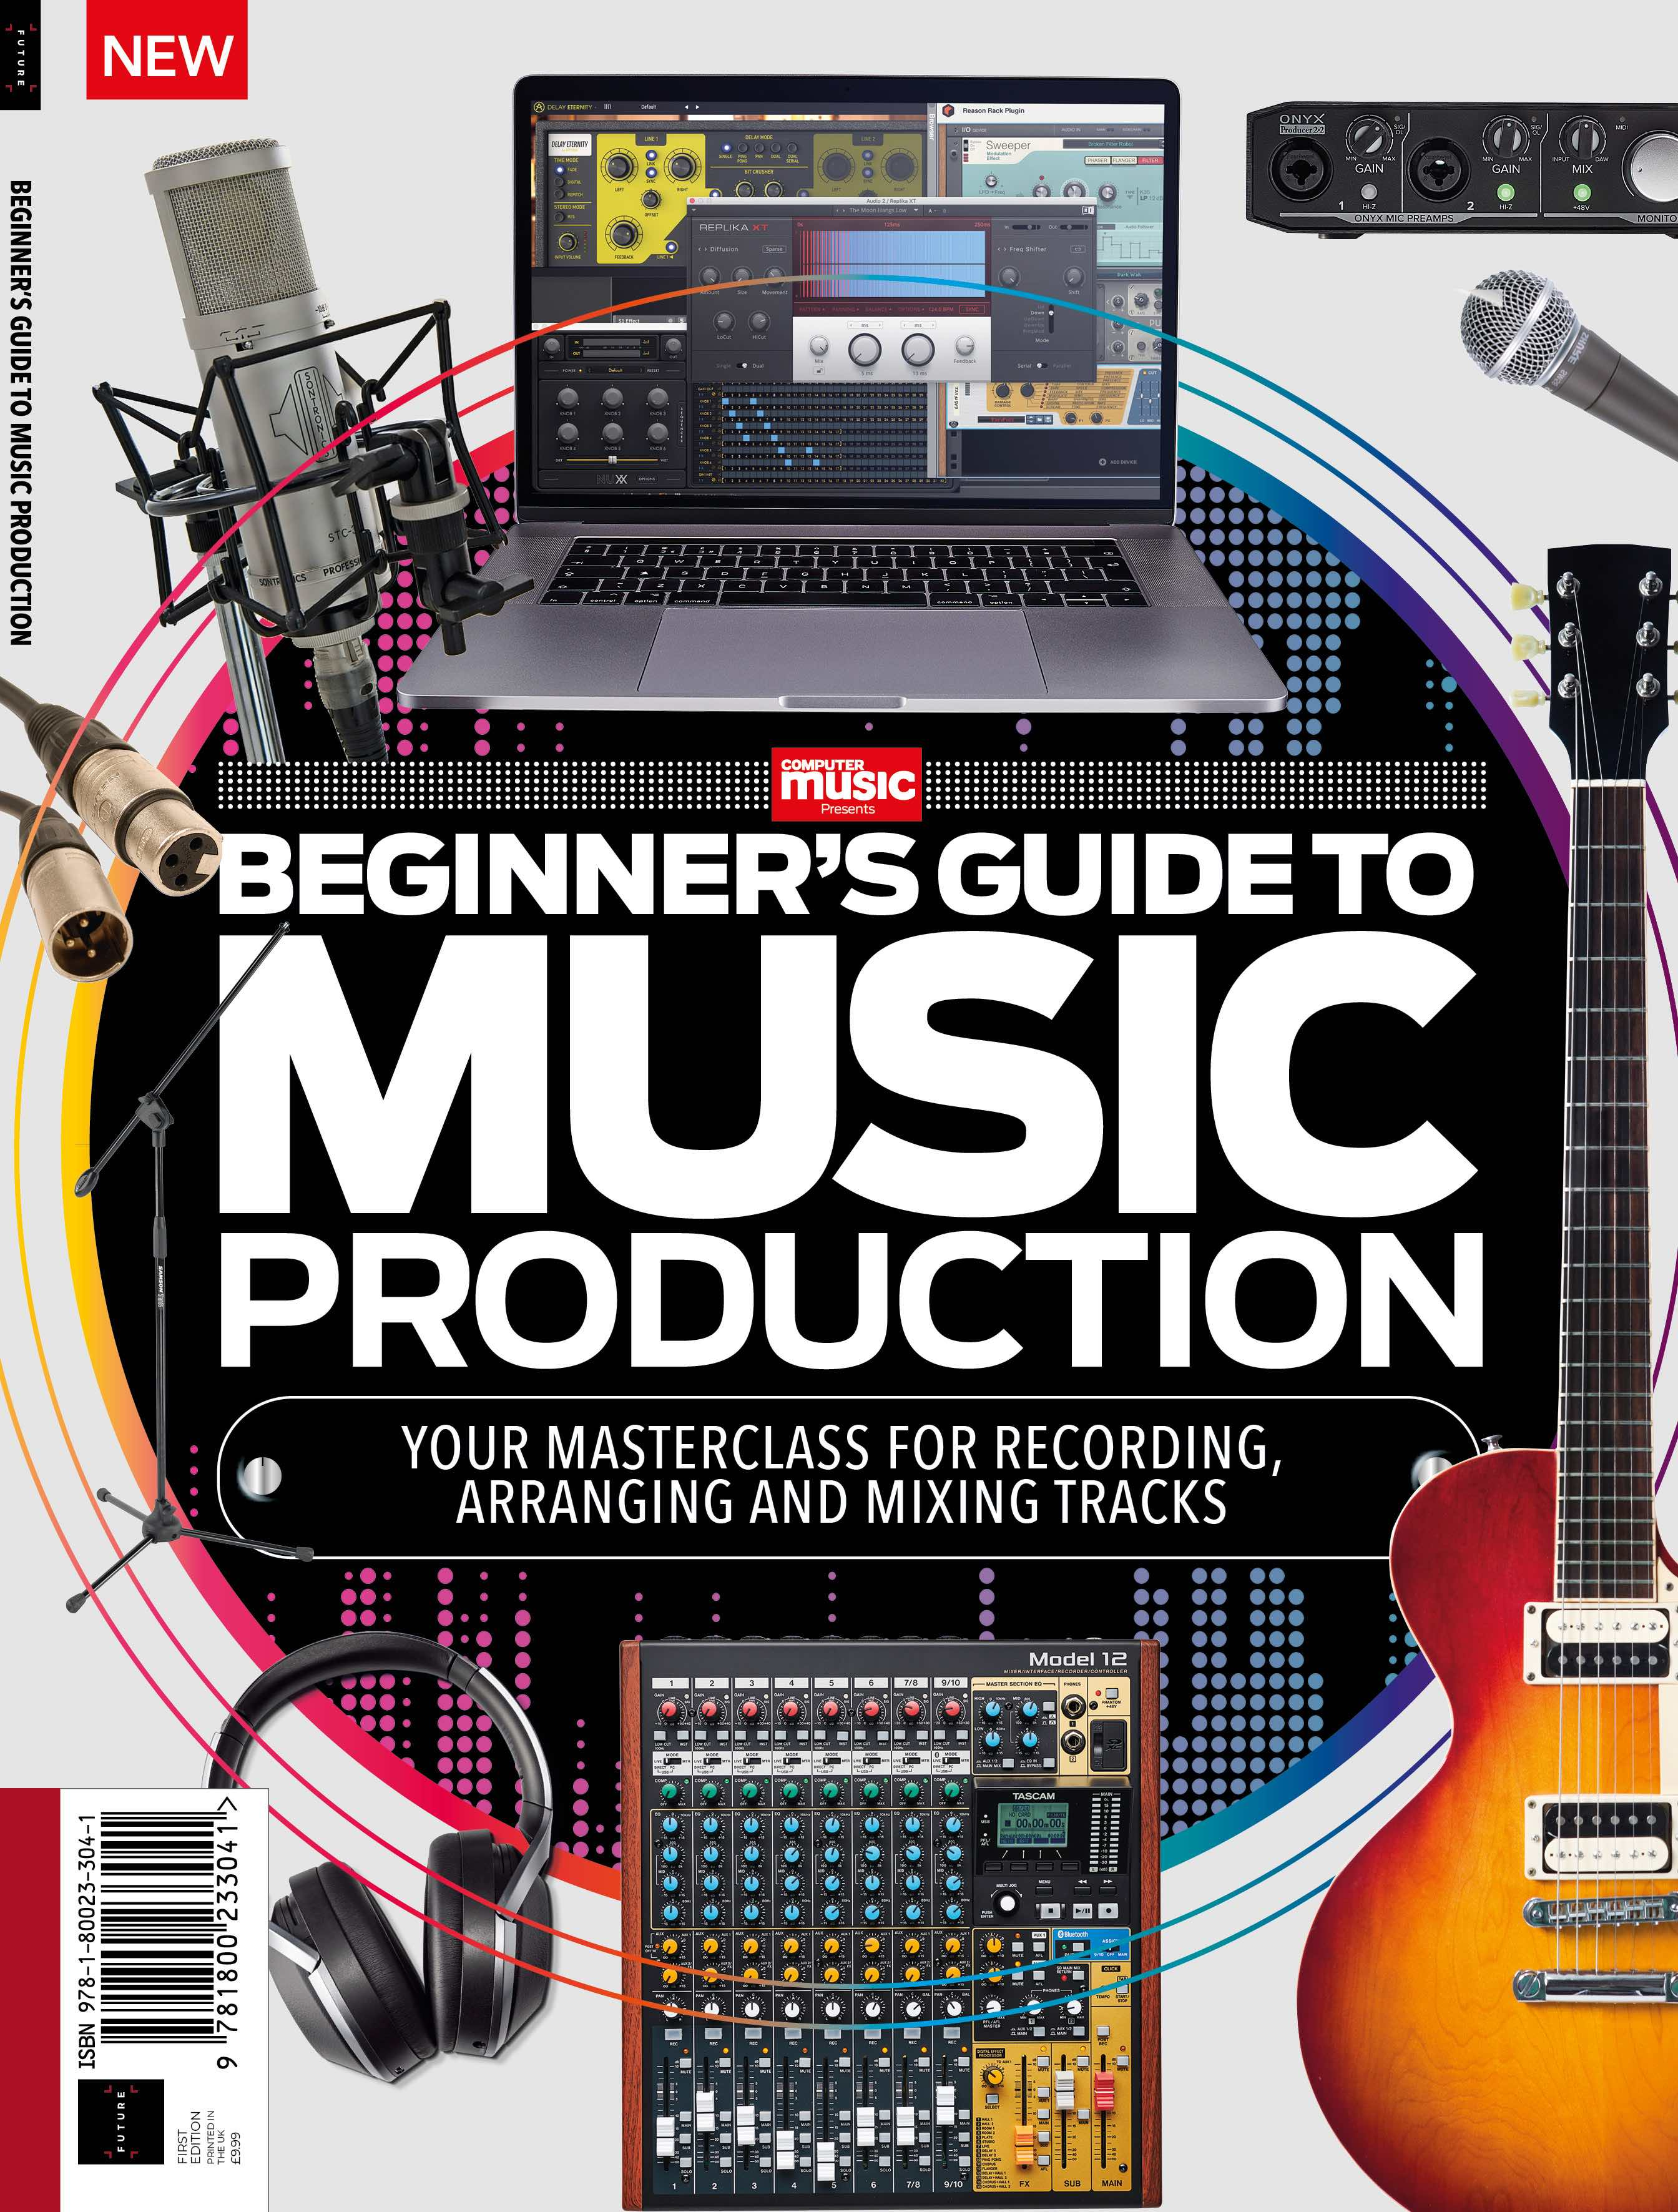 Beginners Guide To Music Production<